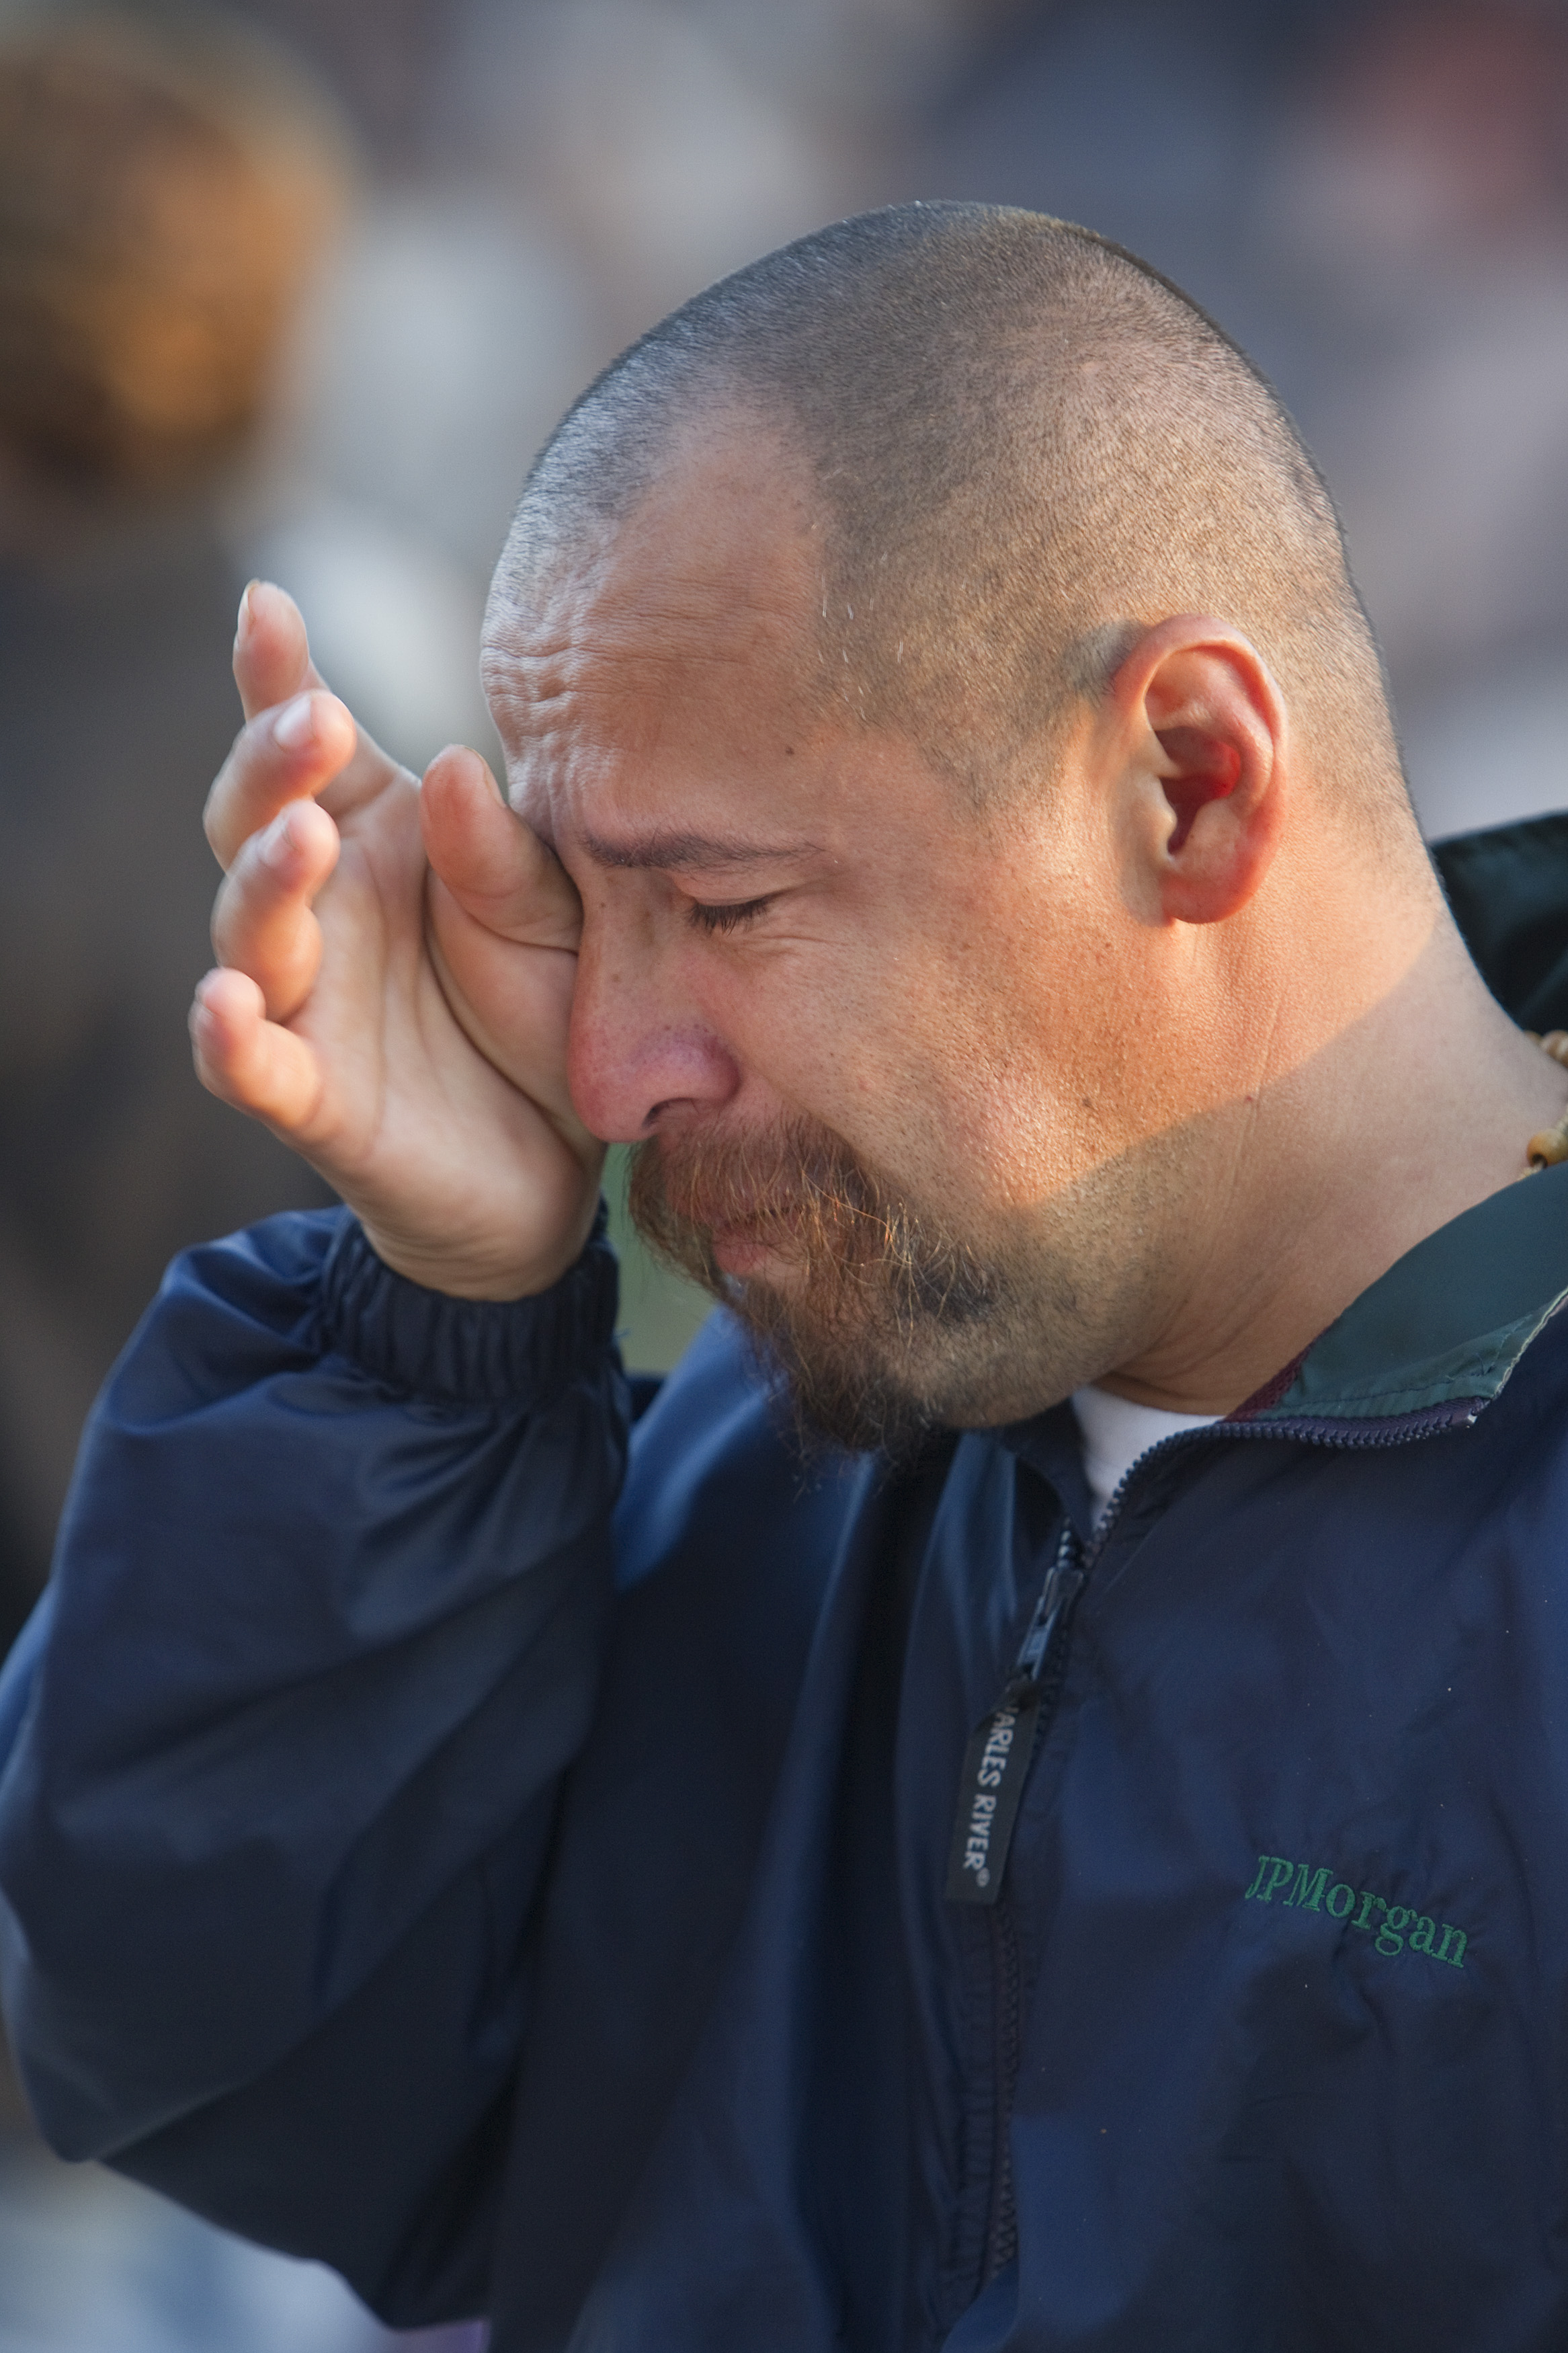 Luis Arturo Padilla Fuentes is separated from his three children, ages 4, 7 and 12 in the United States. Fuentes was attending the December 2012 Posada Without Borders worship service at El Faro Park in Tijuana, Mexico. File photo by Mike DuBose, UMNS